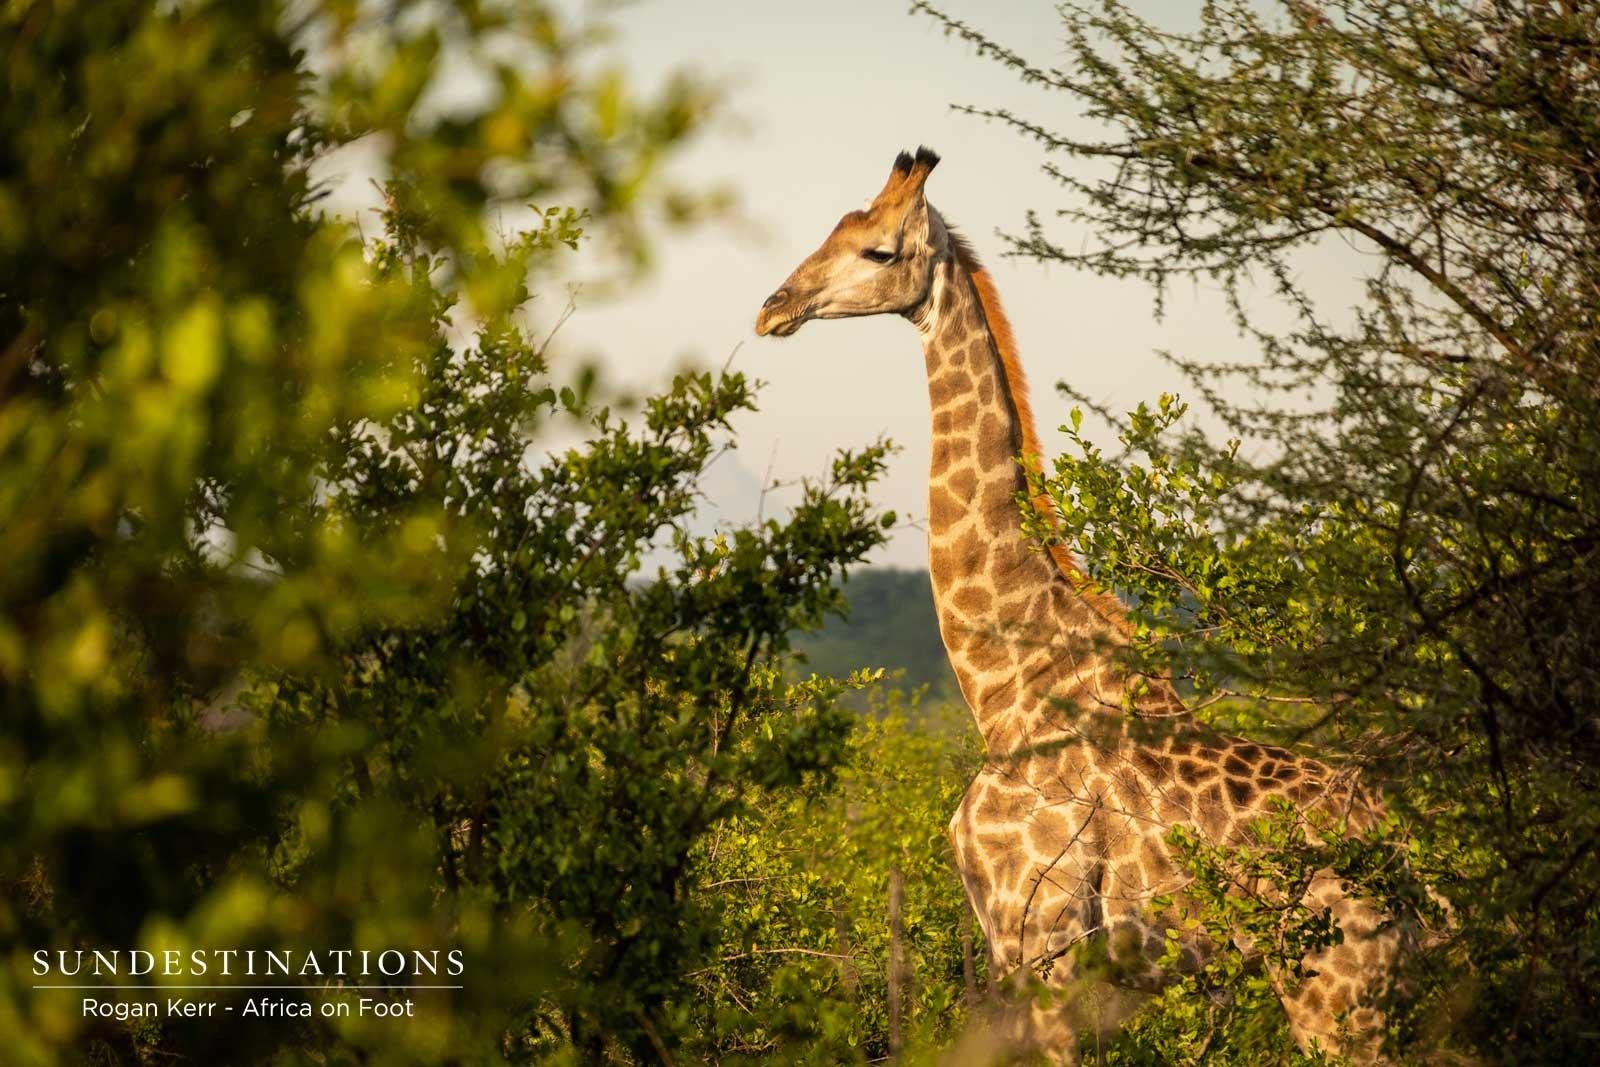 Giraffe - Africa on Foot